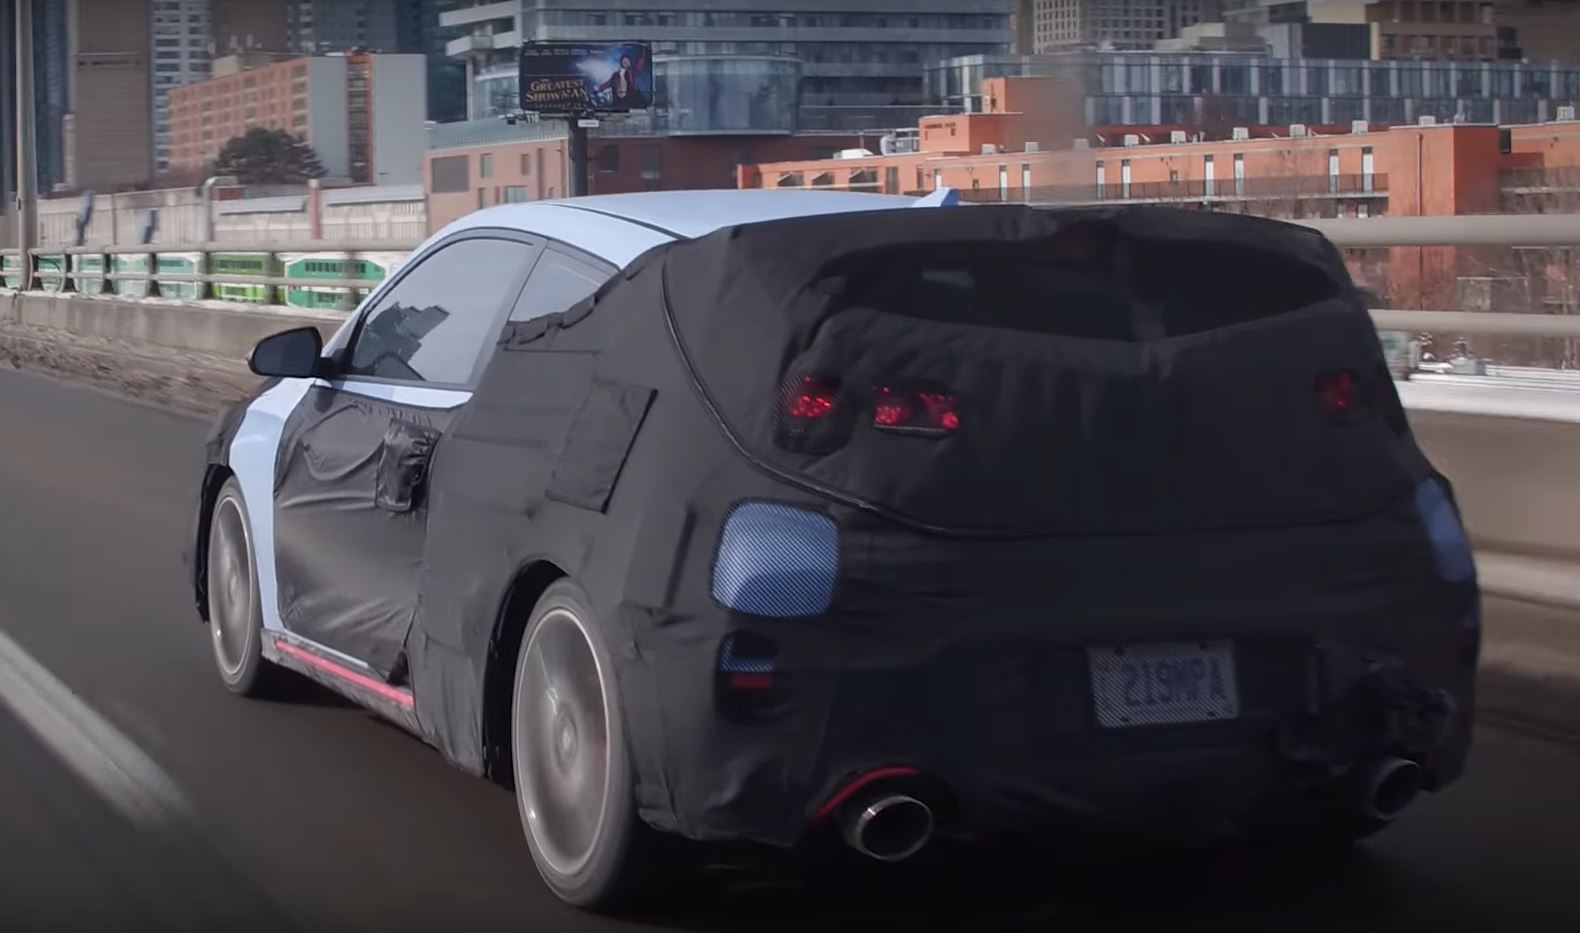 2019 Hyundai Veloster N Prototype Reviewed, Sounds Great